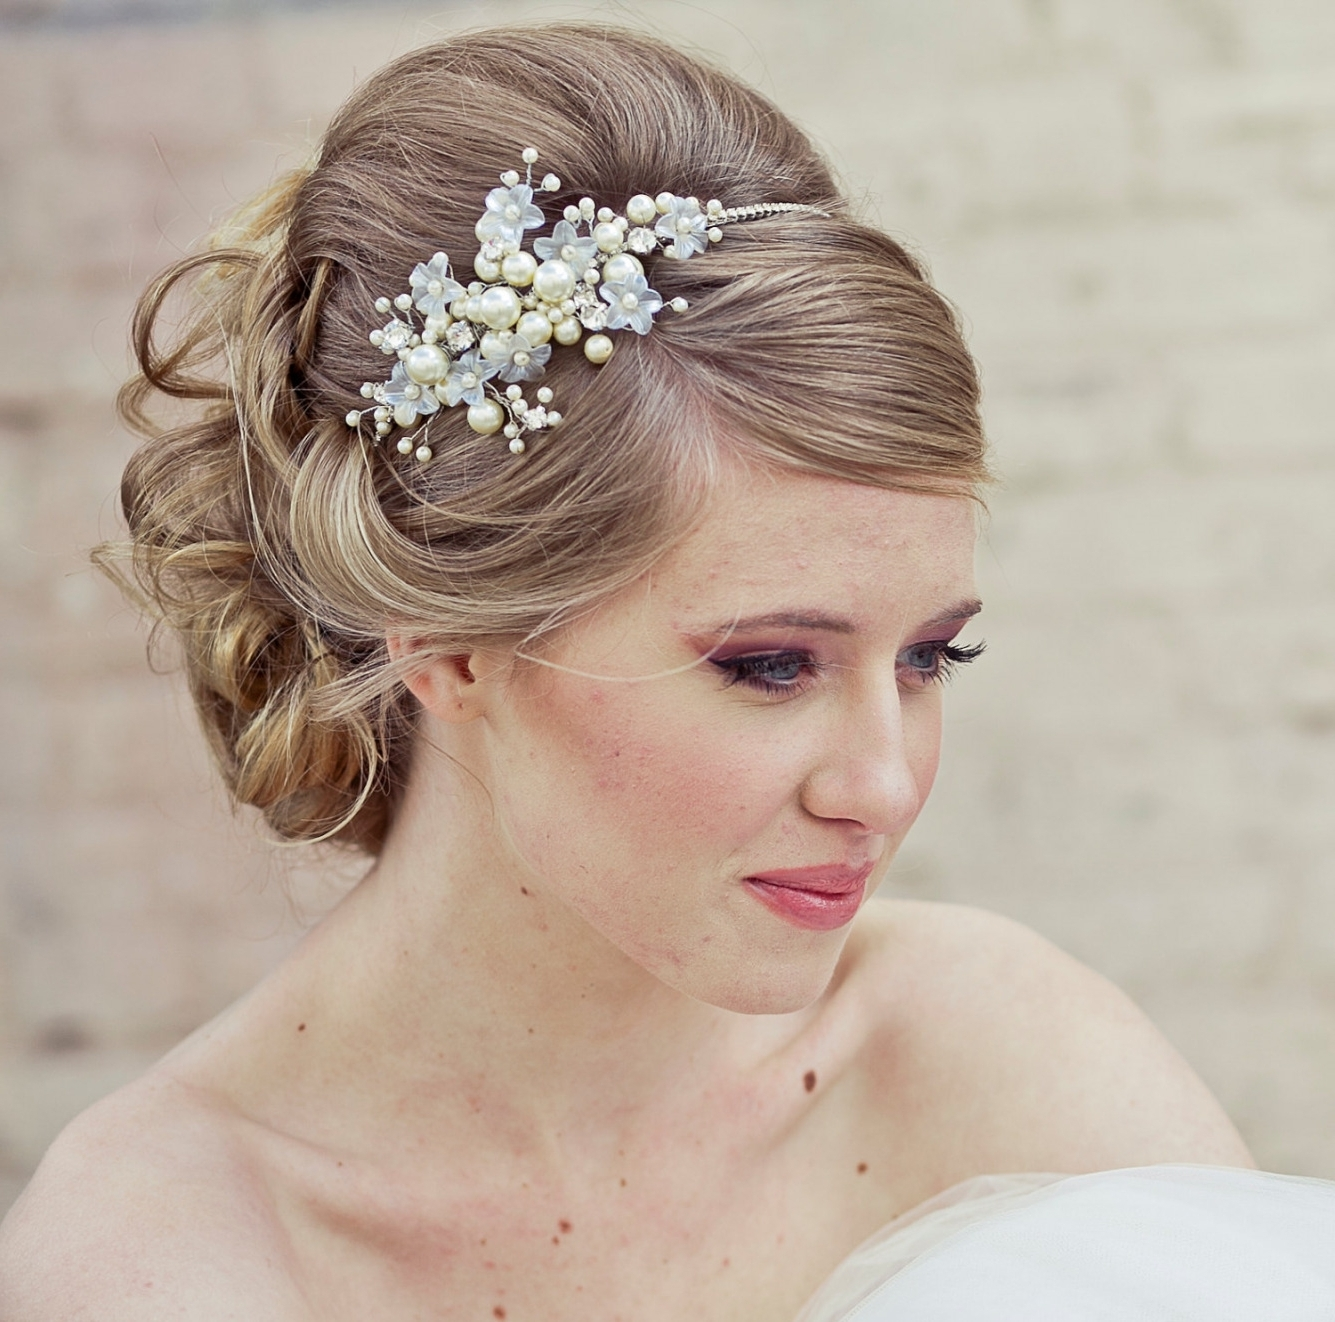 Well Liked Wedding Hairstyles With Crown Within Fresh Vintage Wedding Hairstyles With Tiara Collection (View 6 of 15)